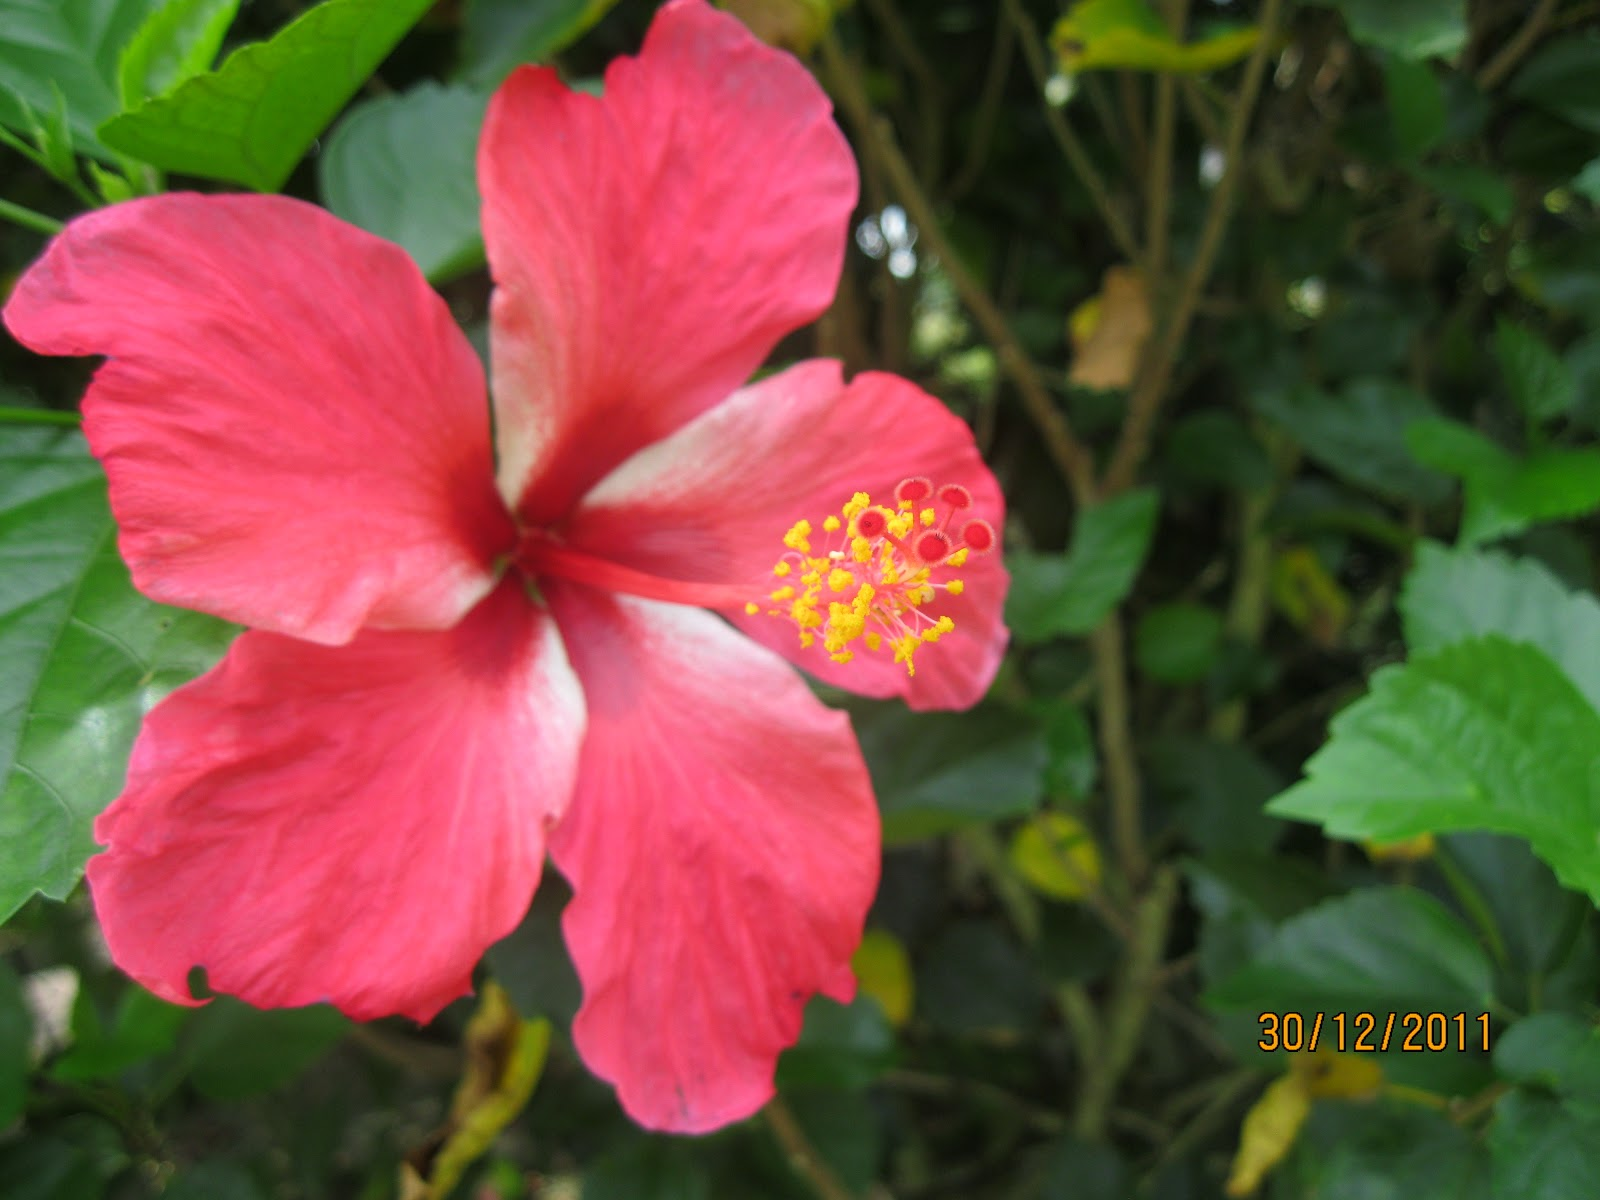 Anim agriculture technology perak herbs park this is our national flower called bunga raya with 5 petals and strong red color there are about 150 hibiscus spp tree varieties found in our country izmirmasajfo